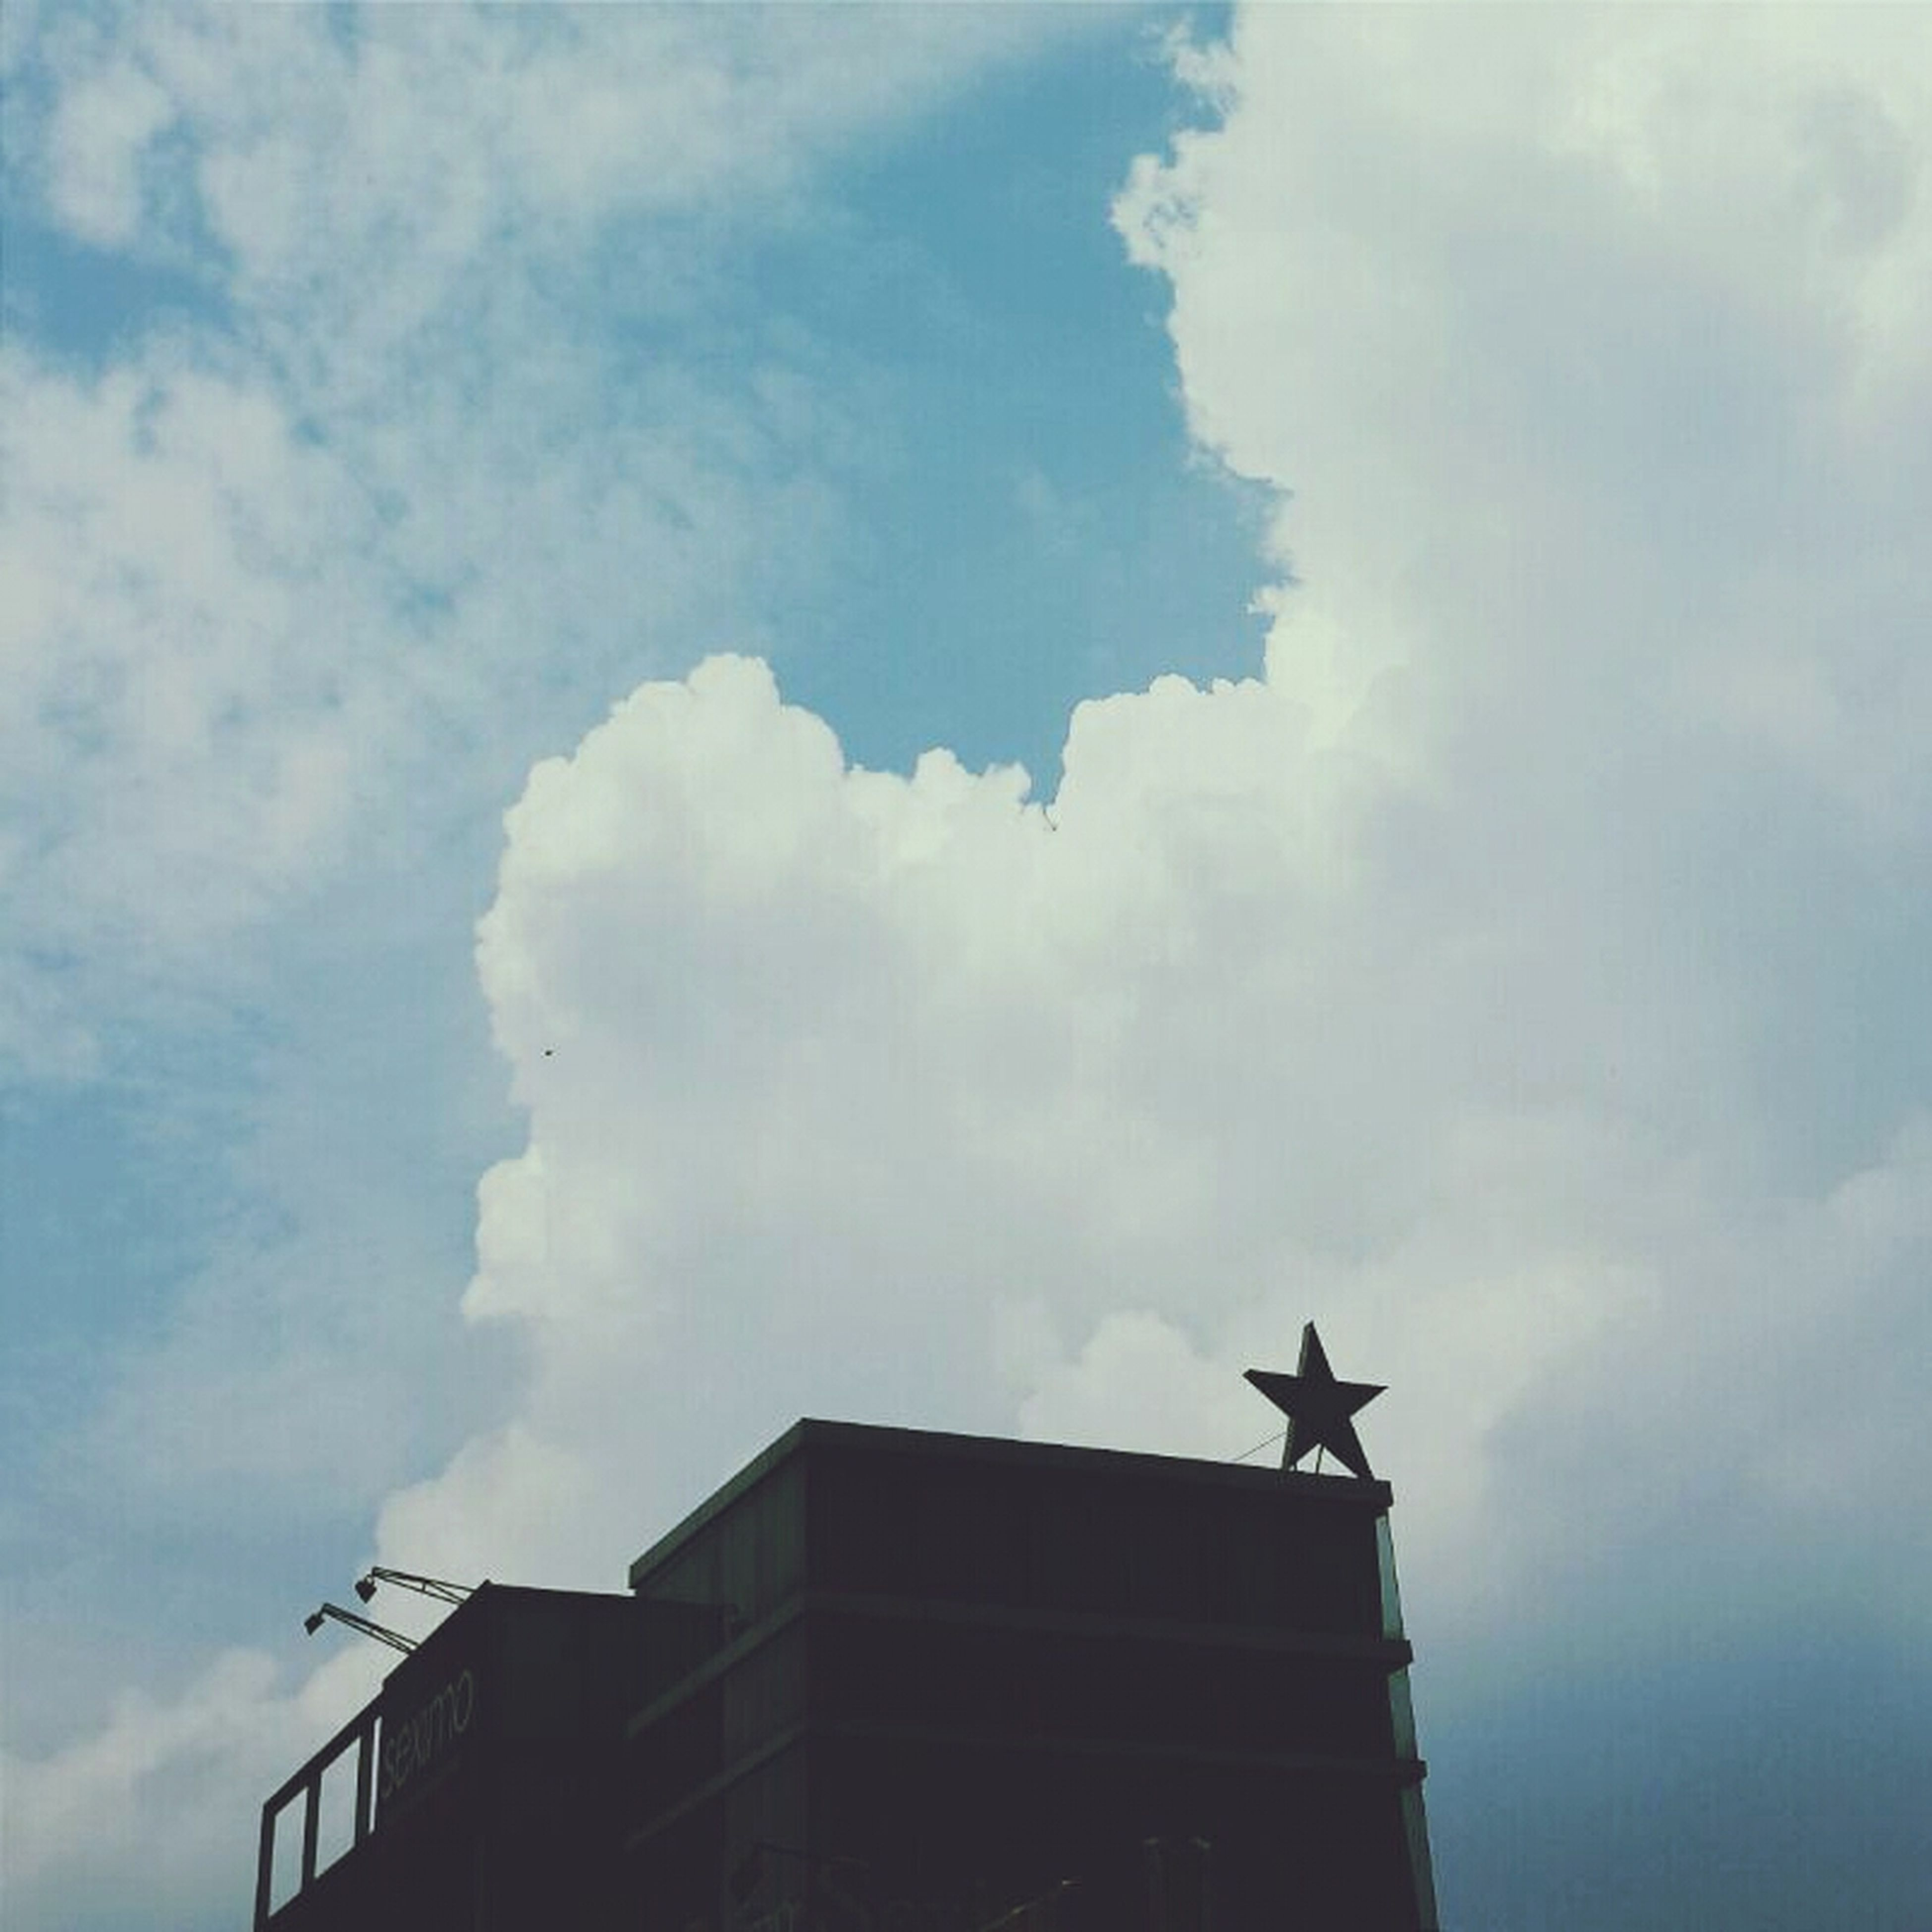 low angle view, sky, cloud - sky, building exterior, architecture, built structure, cloudy, cloud, bird, animal themes, outdoors, animals in the wild, day, wildlife, human representation, high section, building, one animal, statue, no people